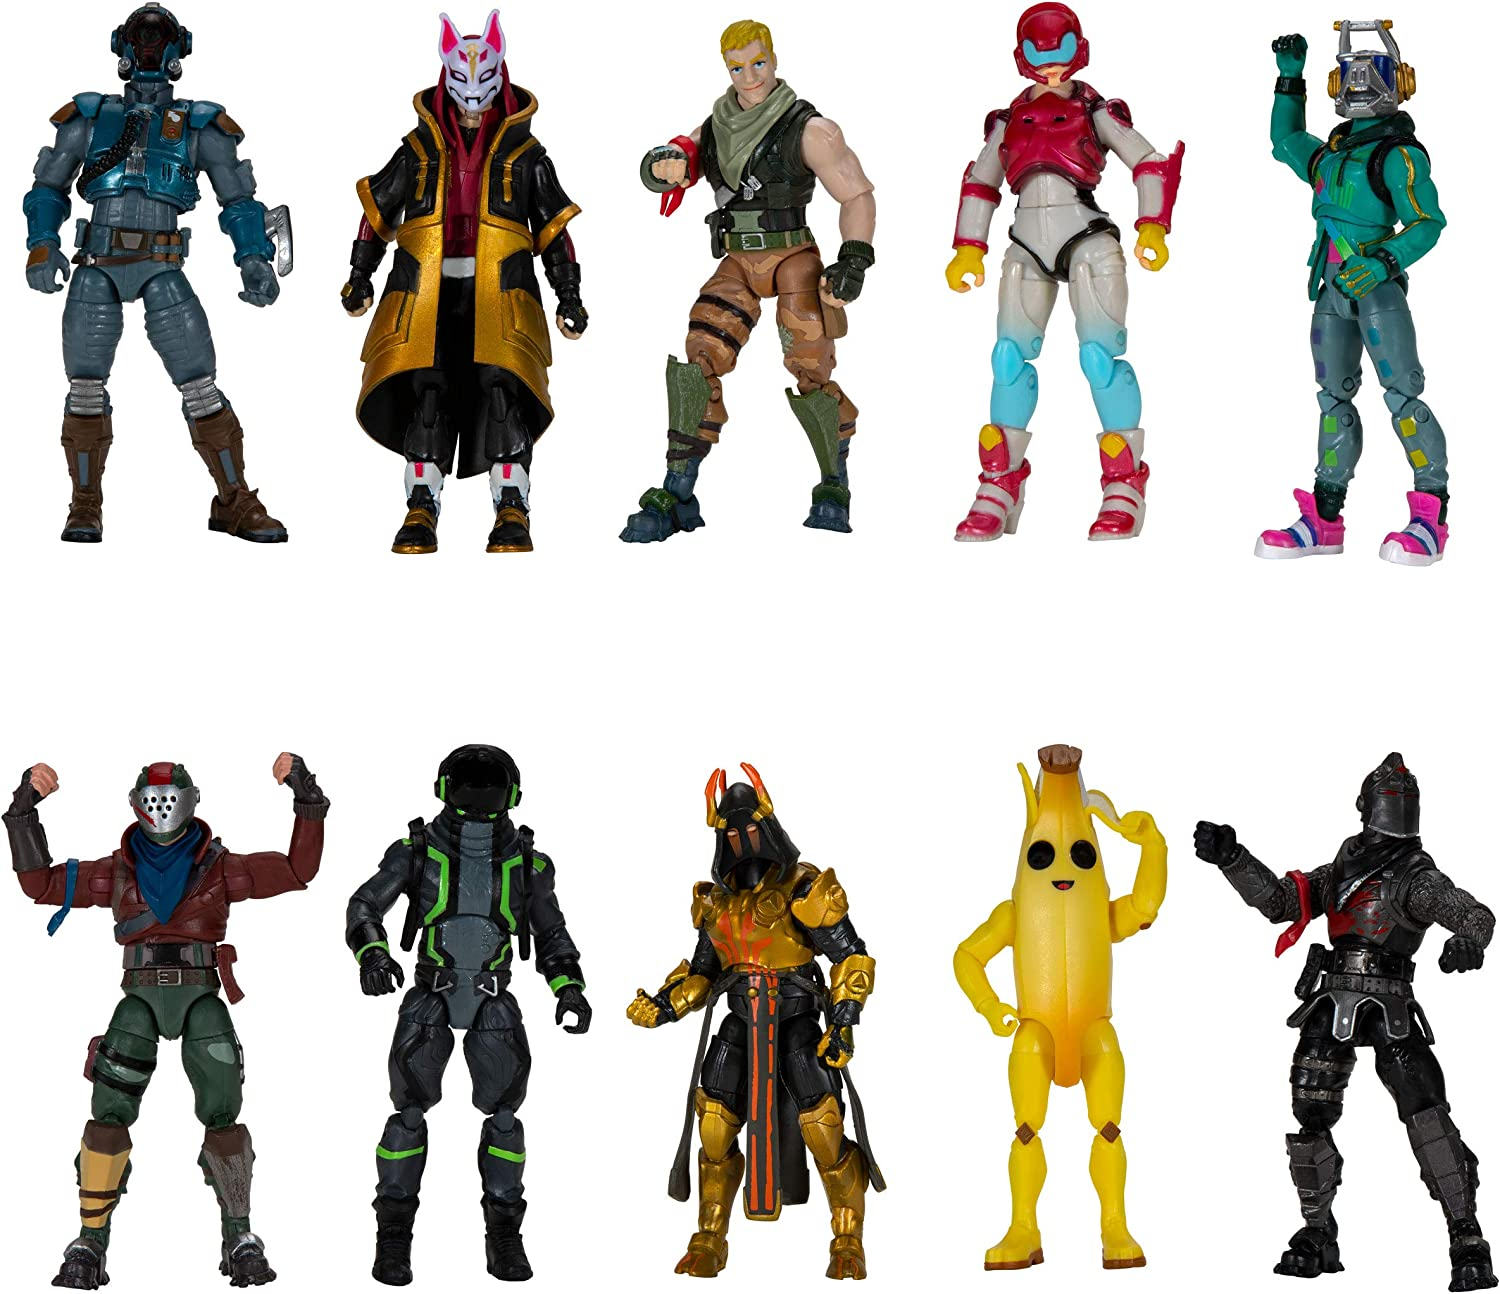 Amazon Com Fortnite The Chapter 1 Collection Ten 4 Action Figures Featuring Recruit Jonesy Black Knight Rust Lord The Visitor Drift Dj Yonder Ice King Gold Peely Rox Eternal Voyager Toys Games Free for commercial use no attribution required high quality images. fortnite the chapter 1 collection ten 4 action figures featuring recruit jonesy black knight rust lord the visitor drift dj yonder ice